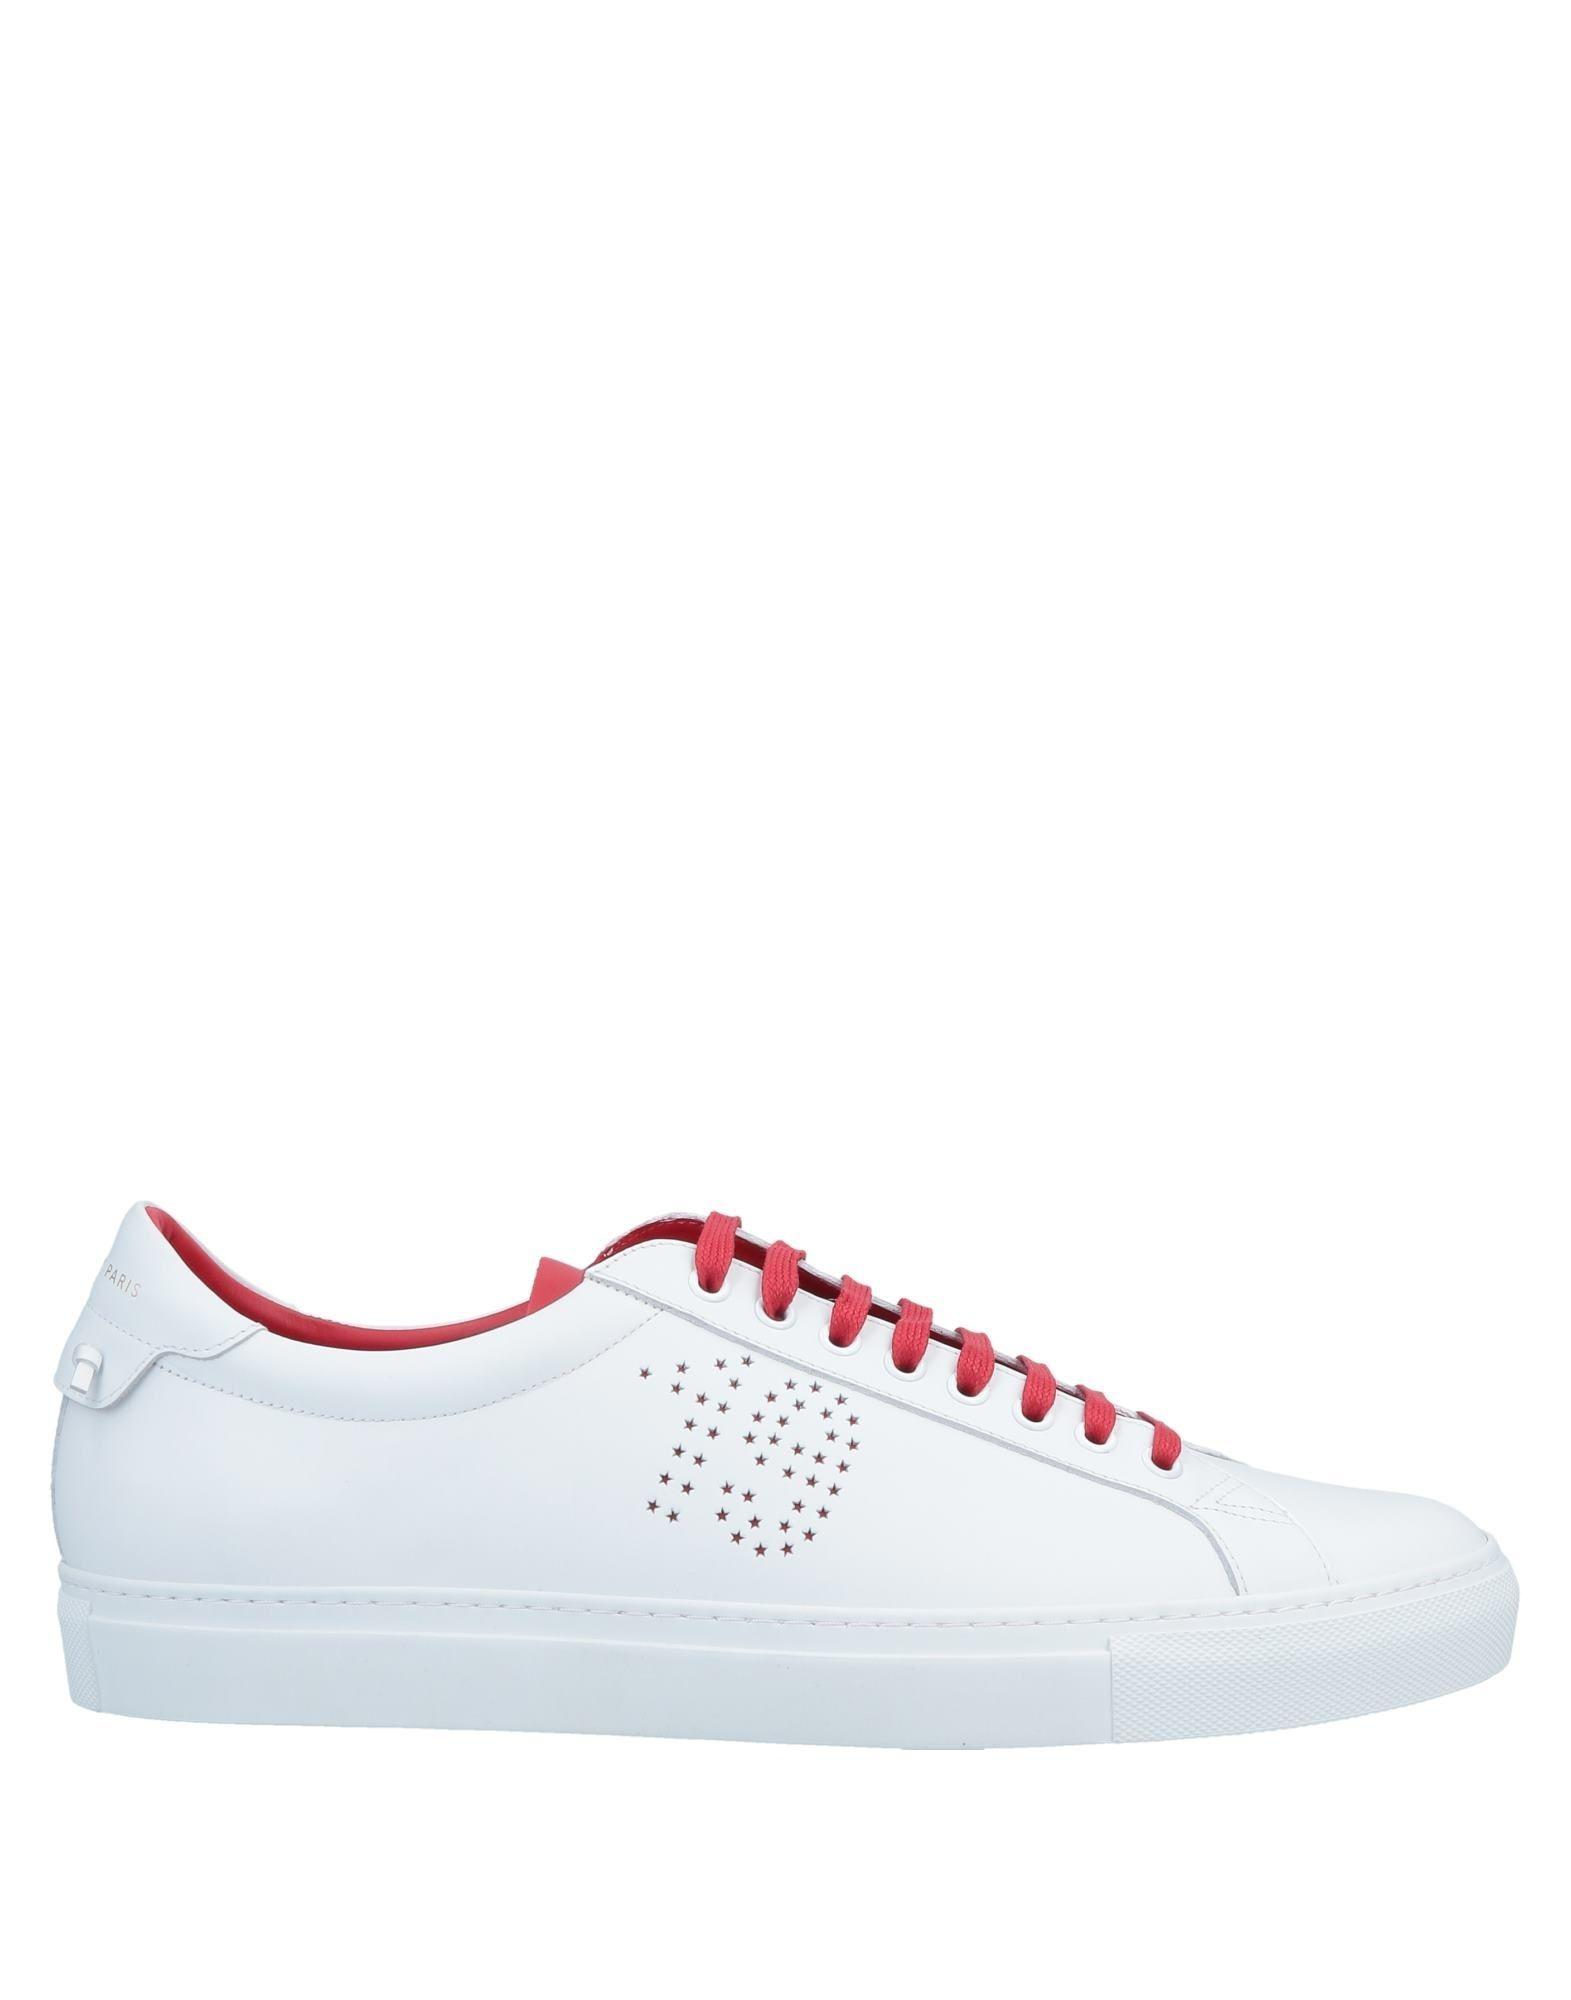 Lyst - Givenchy Low-tops   Sneakers in White for Men bf018476e